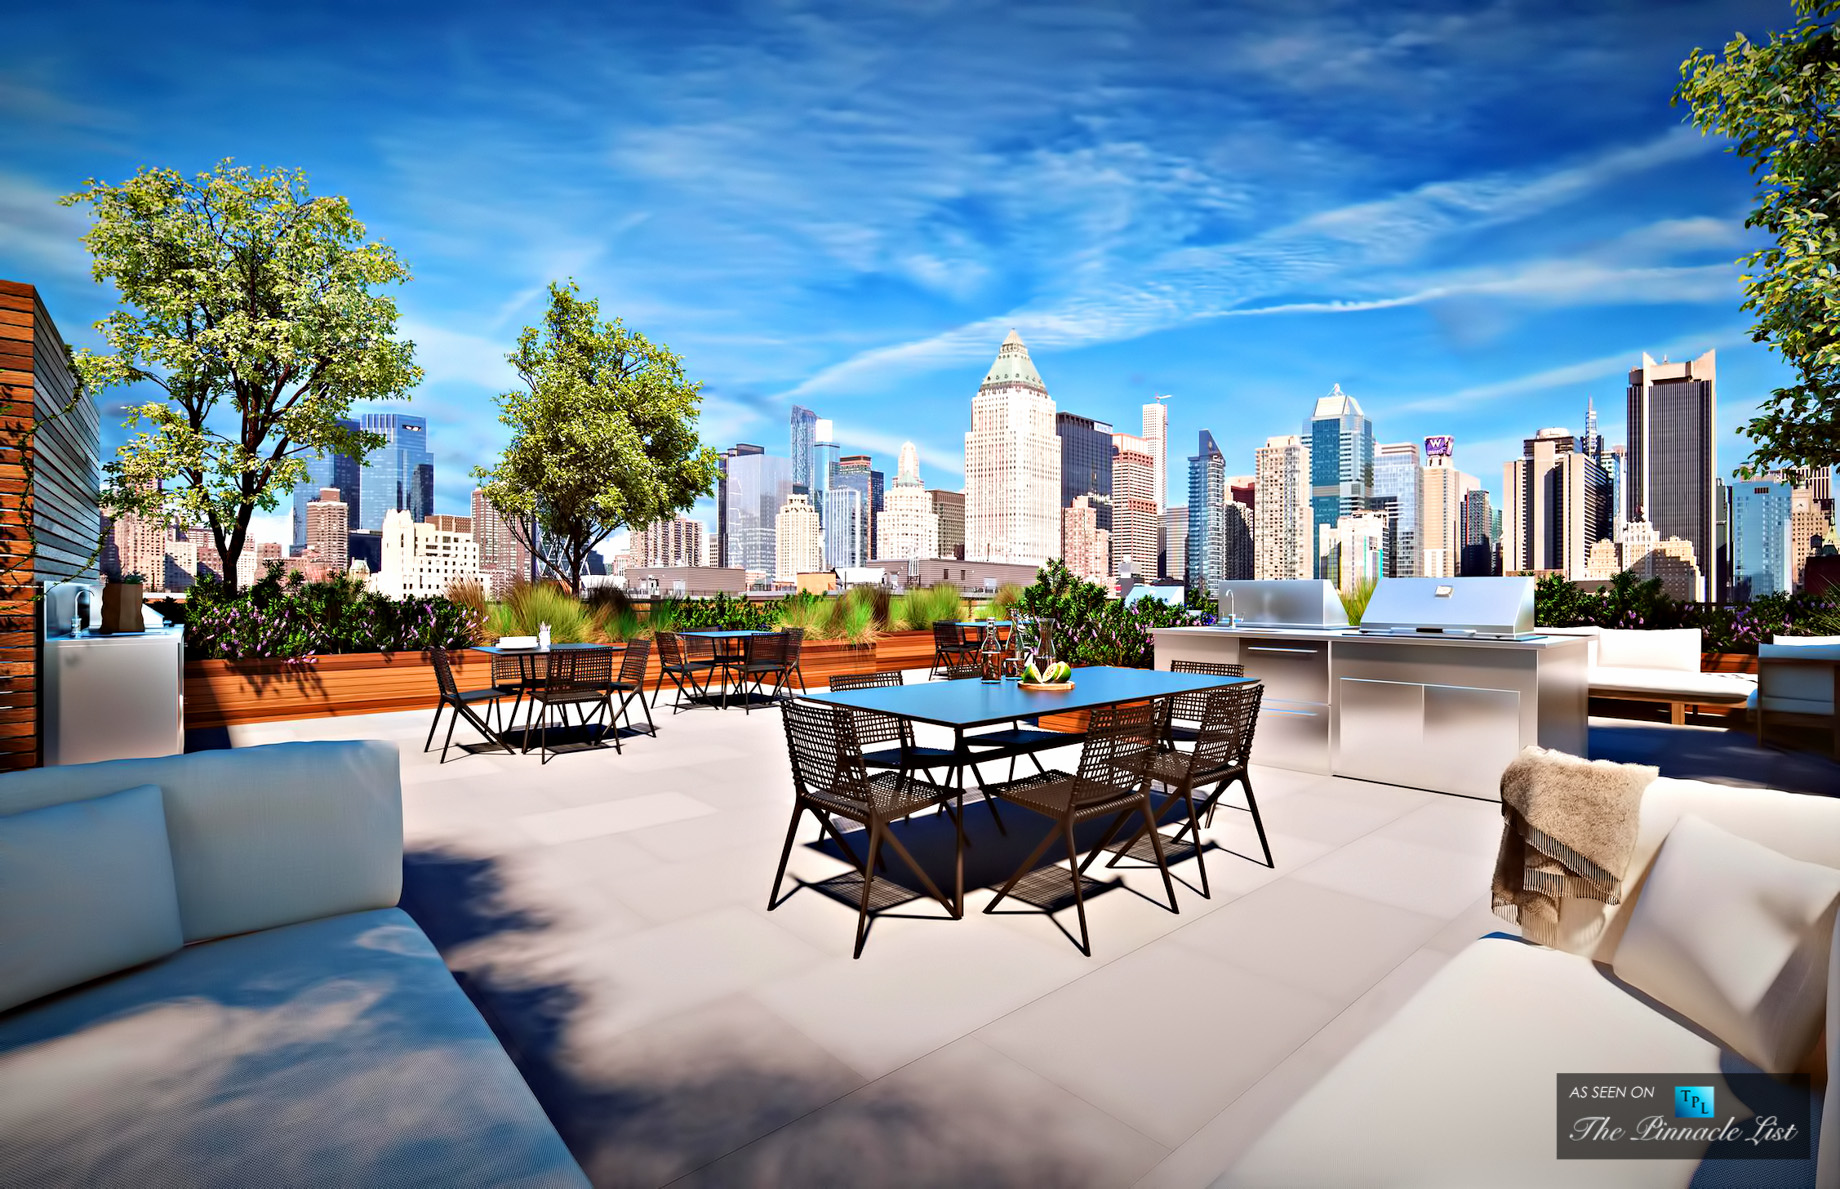 535 West 43rd Street - Top 5 Luxury Real Estate Projects to Watch in New York City